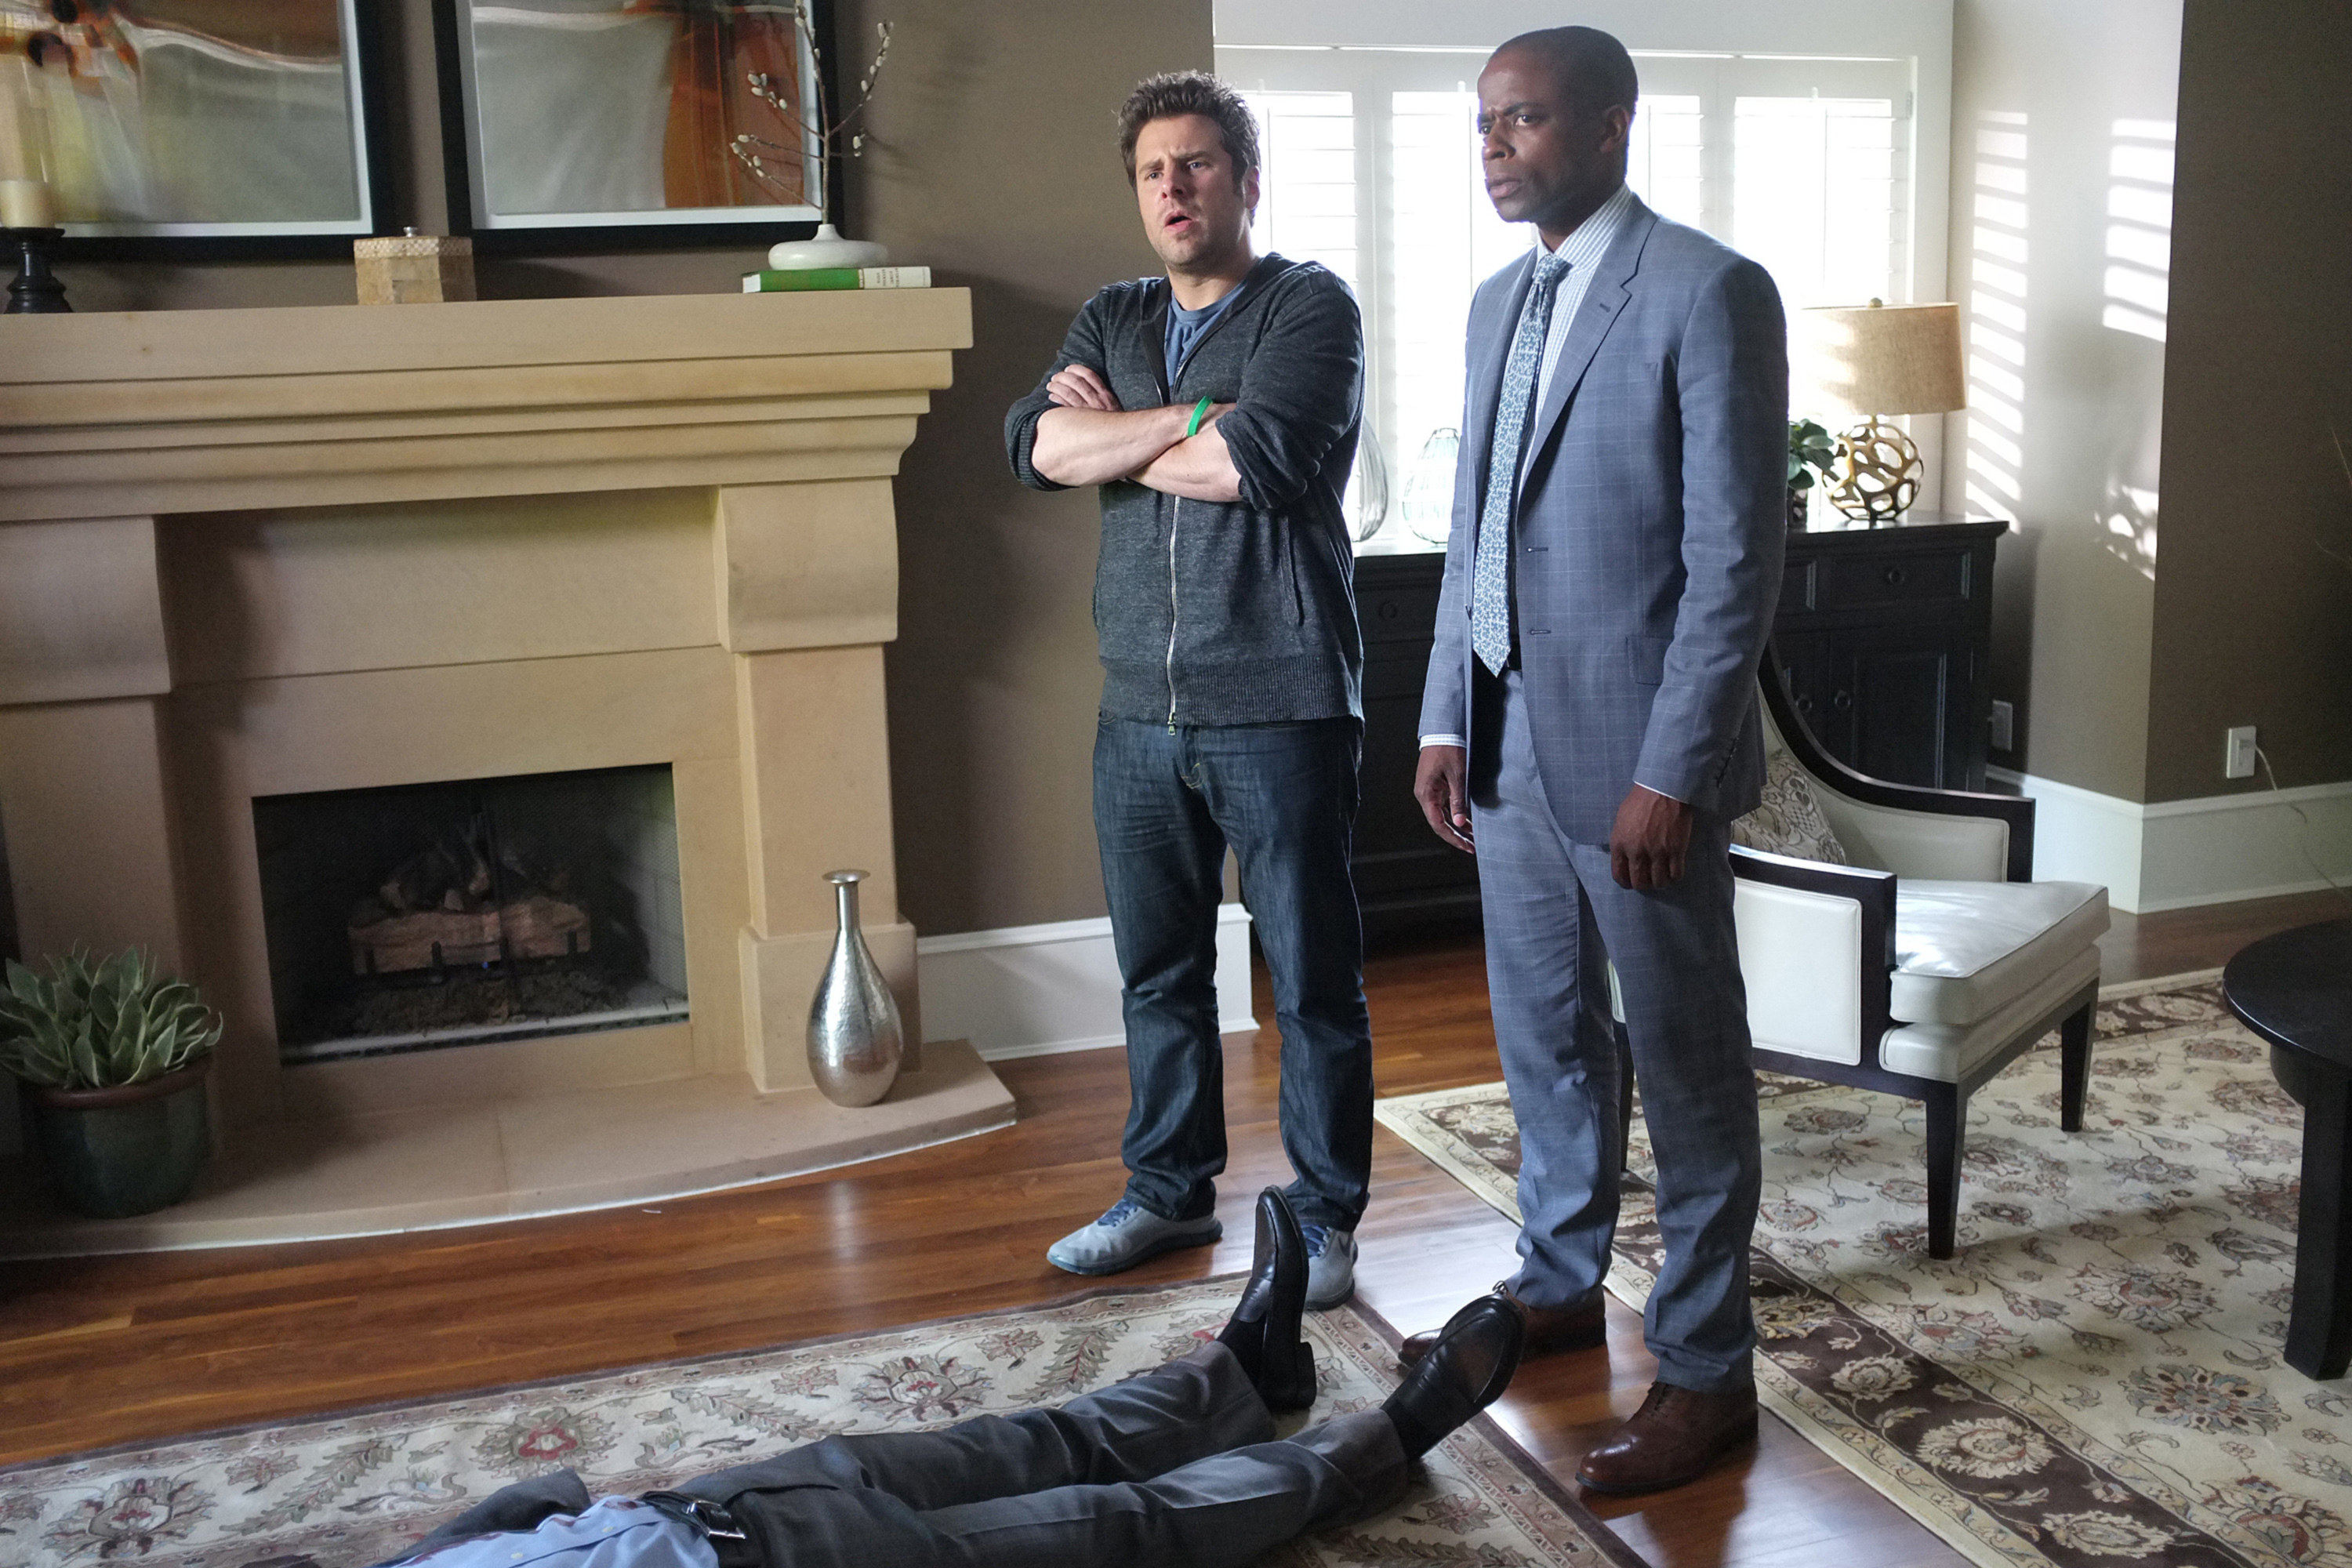 James Roday and Dule Hill stand in a living room over a body